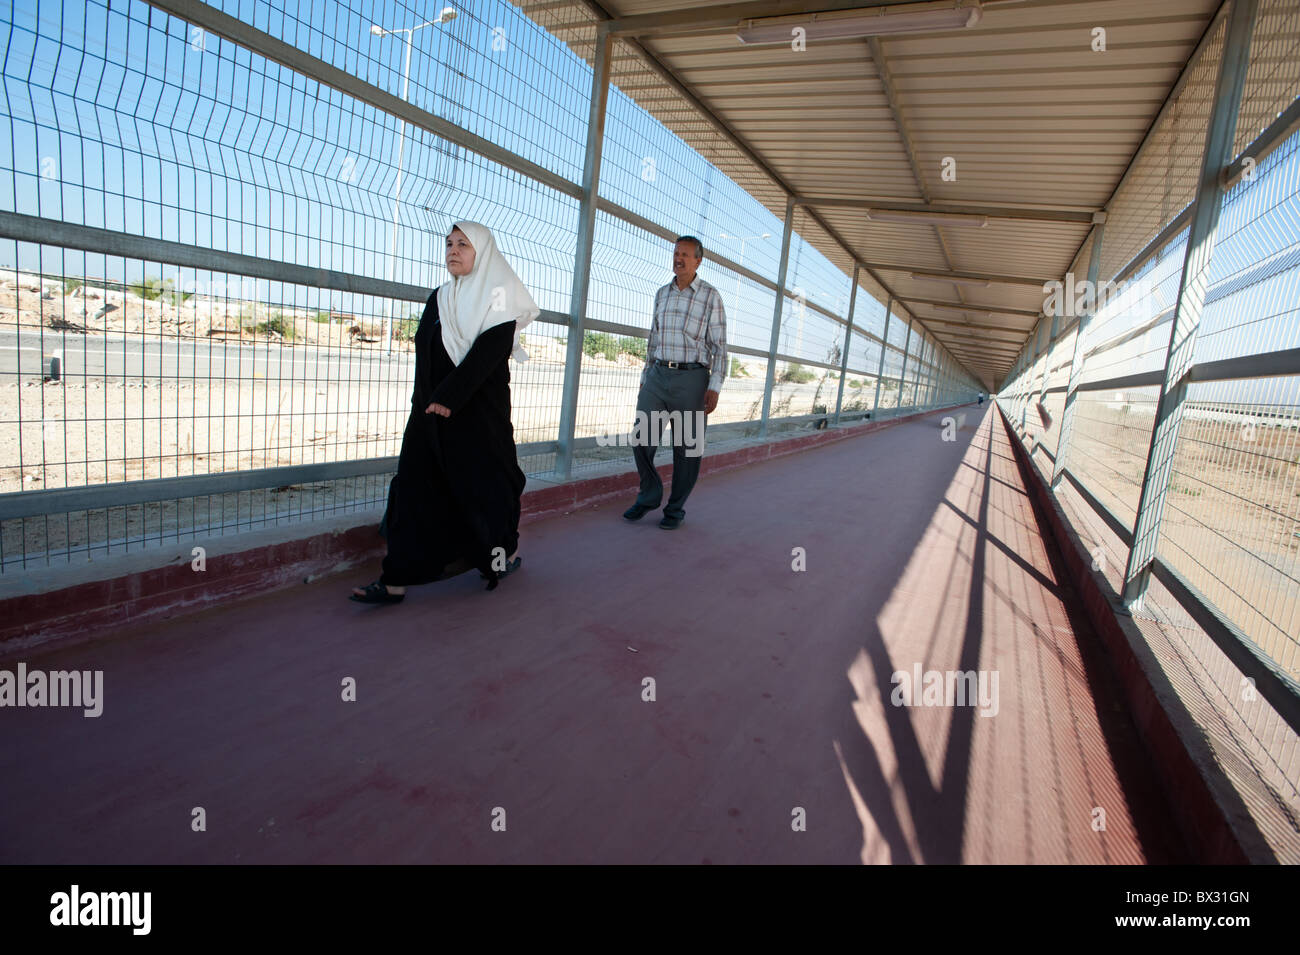 Palestinians walk through a caged terminal extending from the Erez crossing point from Israel to Gaza. - Stock Image